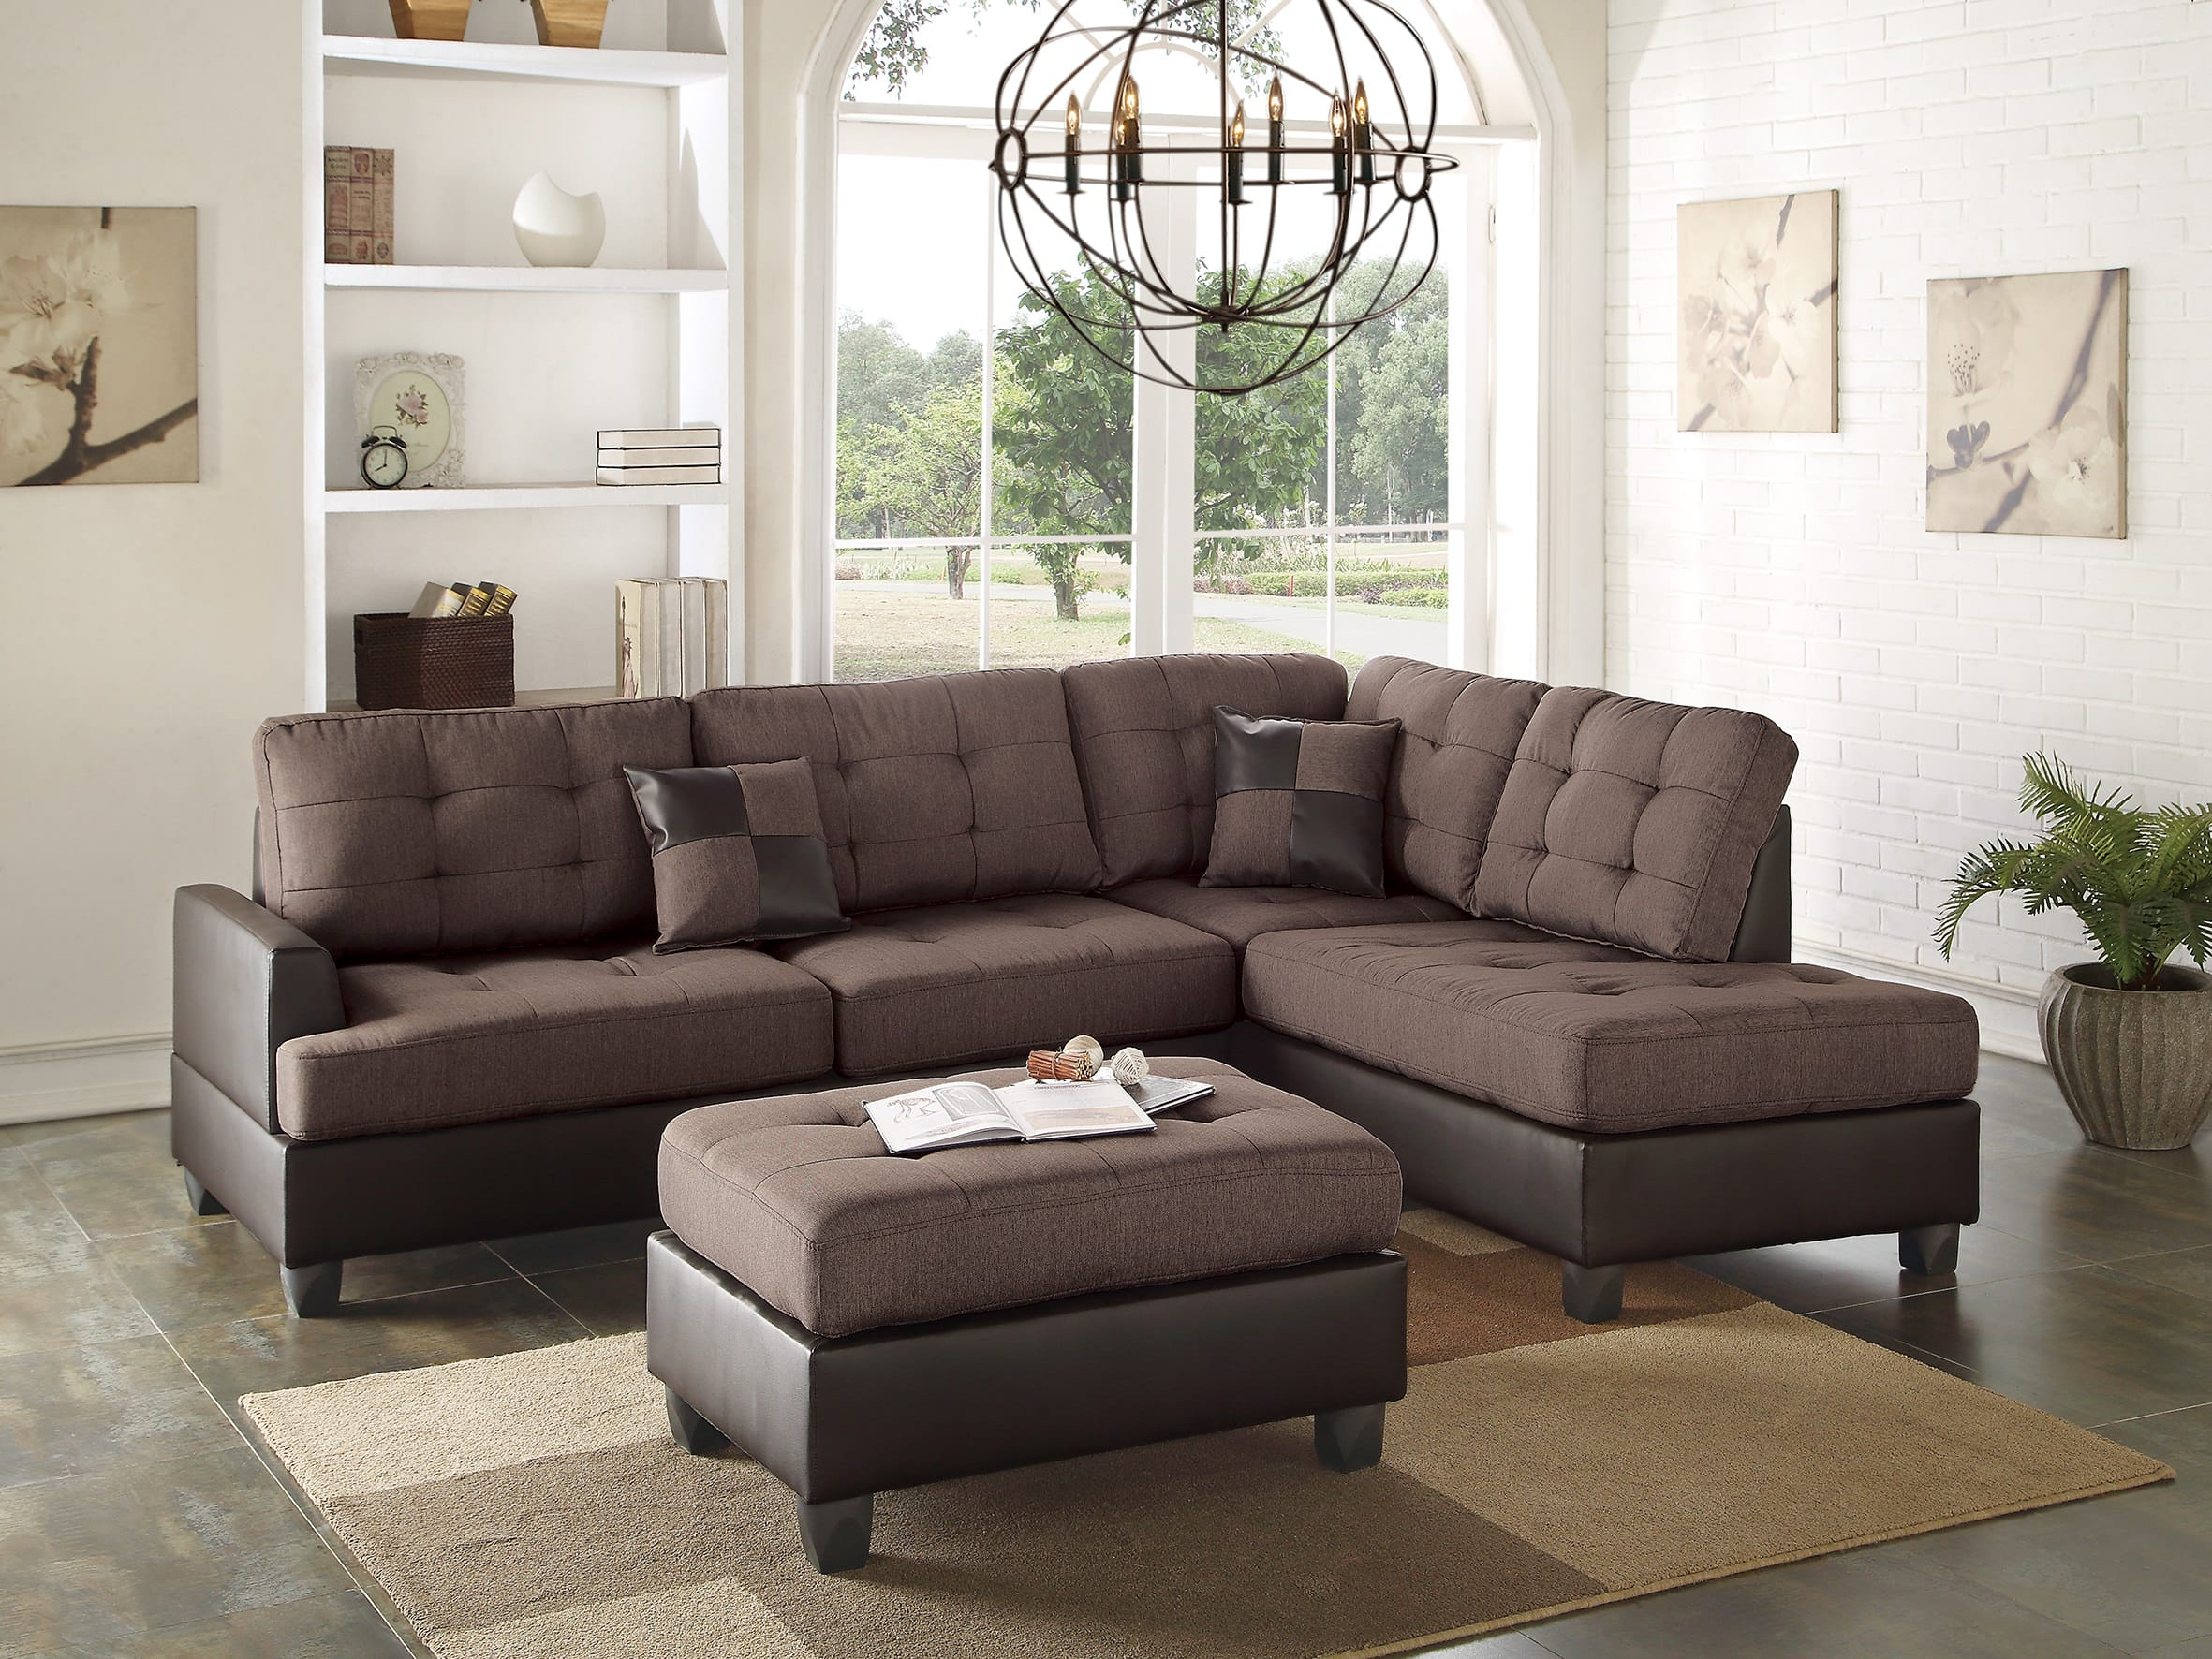 F6857 Chocolate 3 Pcs Sectional Sofa Set by Poundex